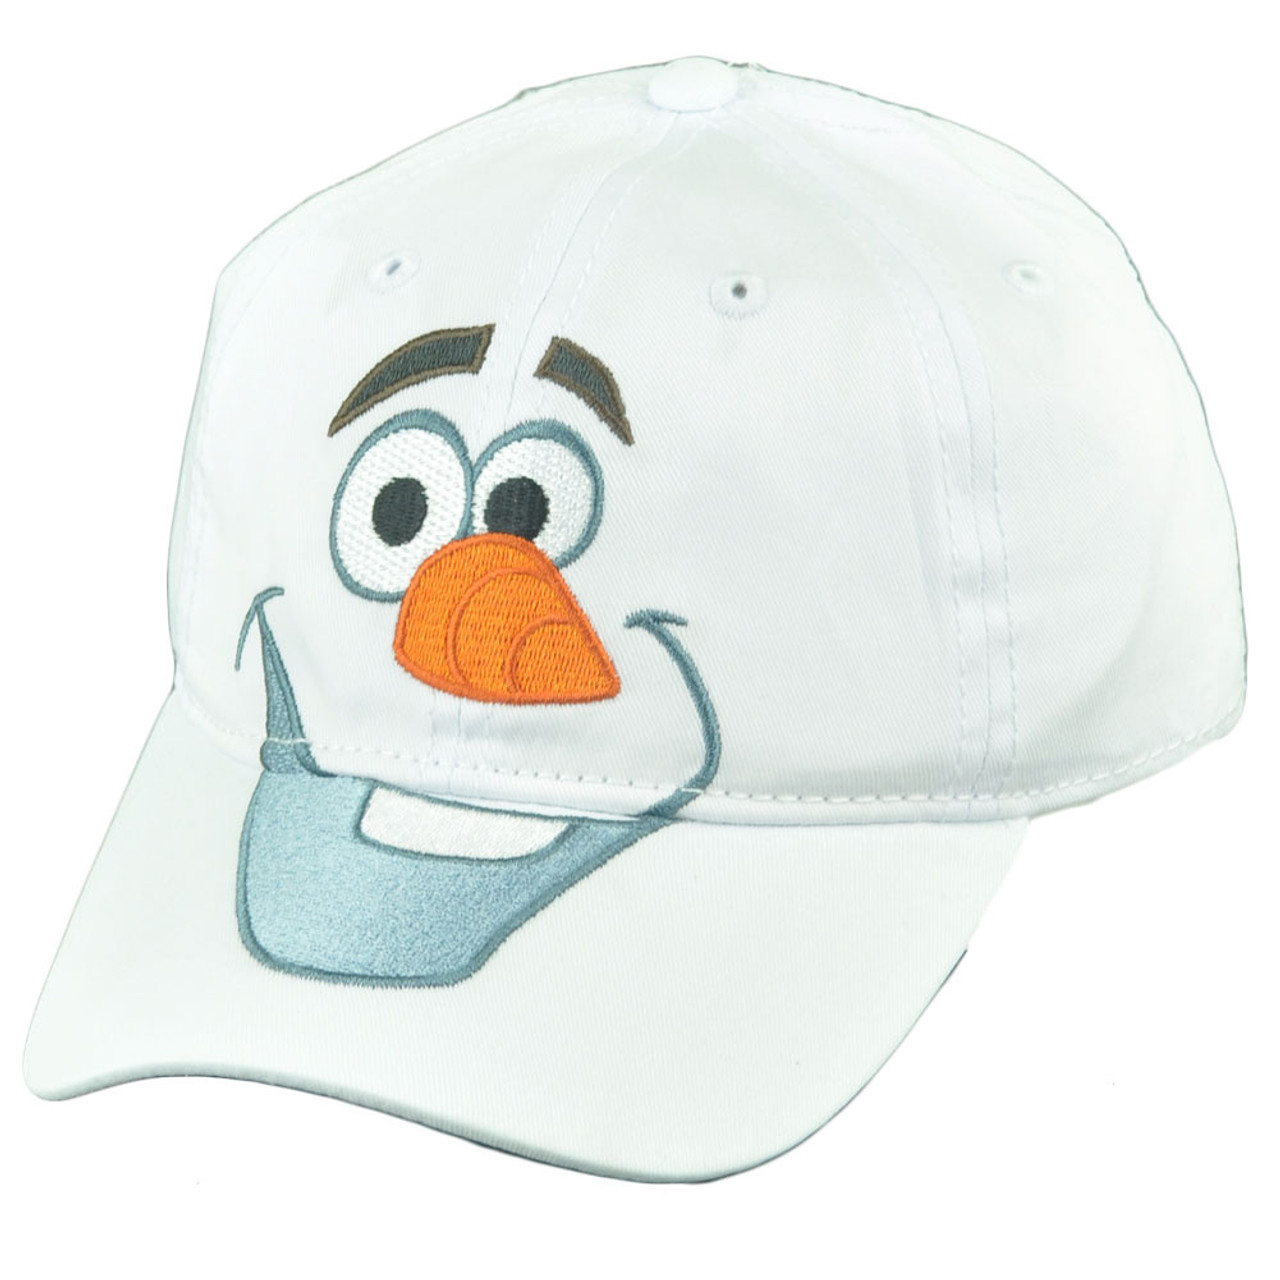 5eed4f5fb1948 Disney Frozen Olaf Face Snowman White Animated Movie Hat Cap Sun Buckle  Relaxed - Cap Store Online.com